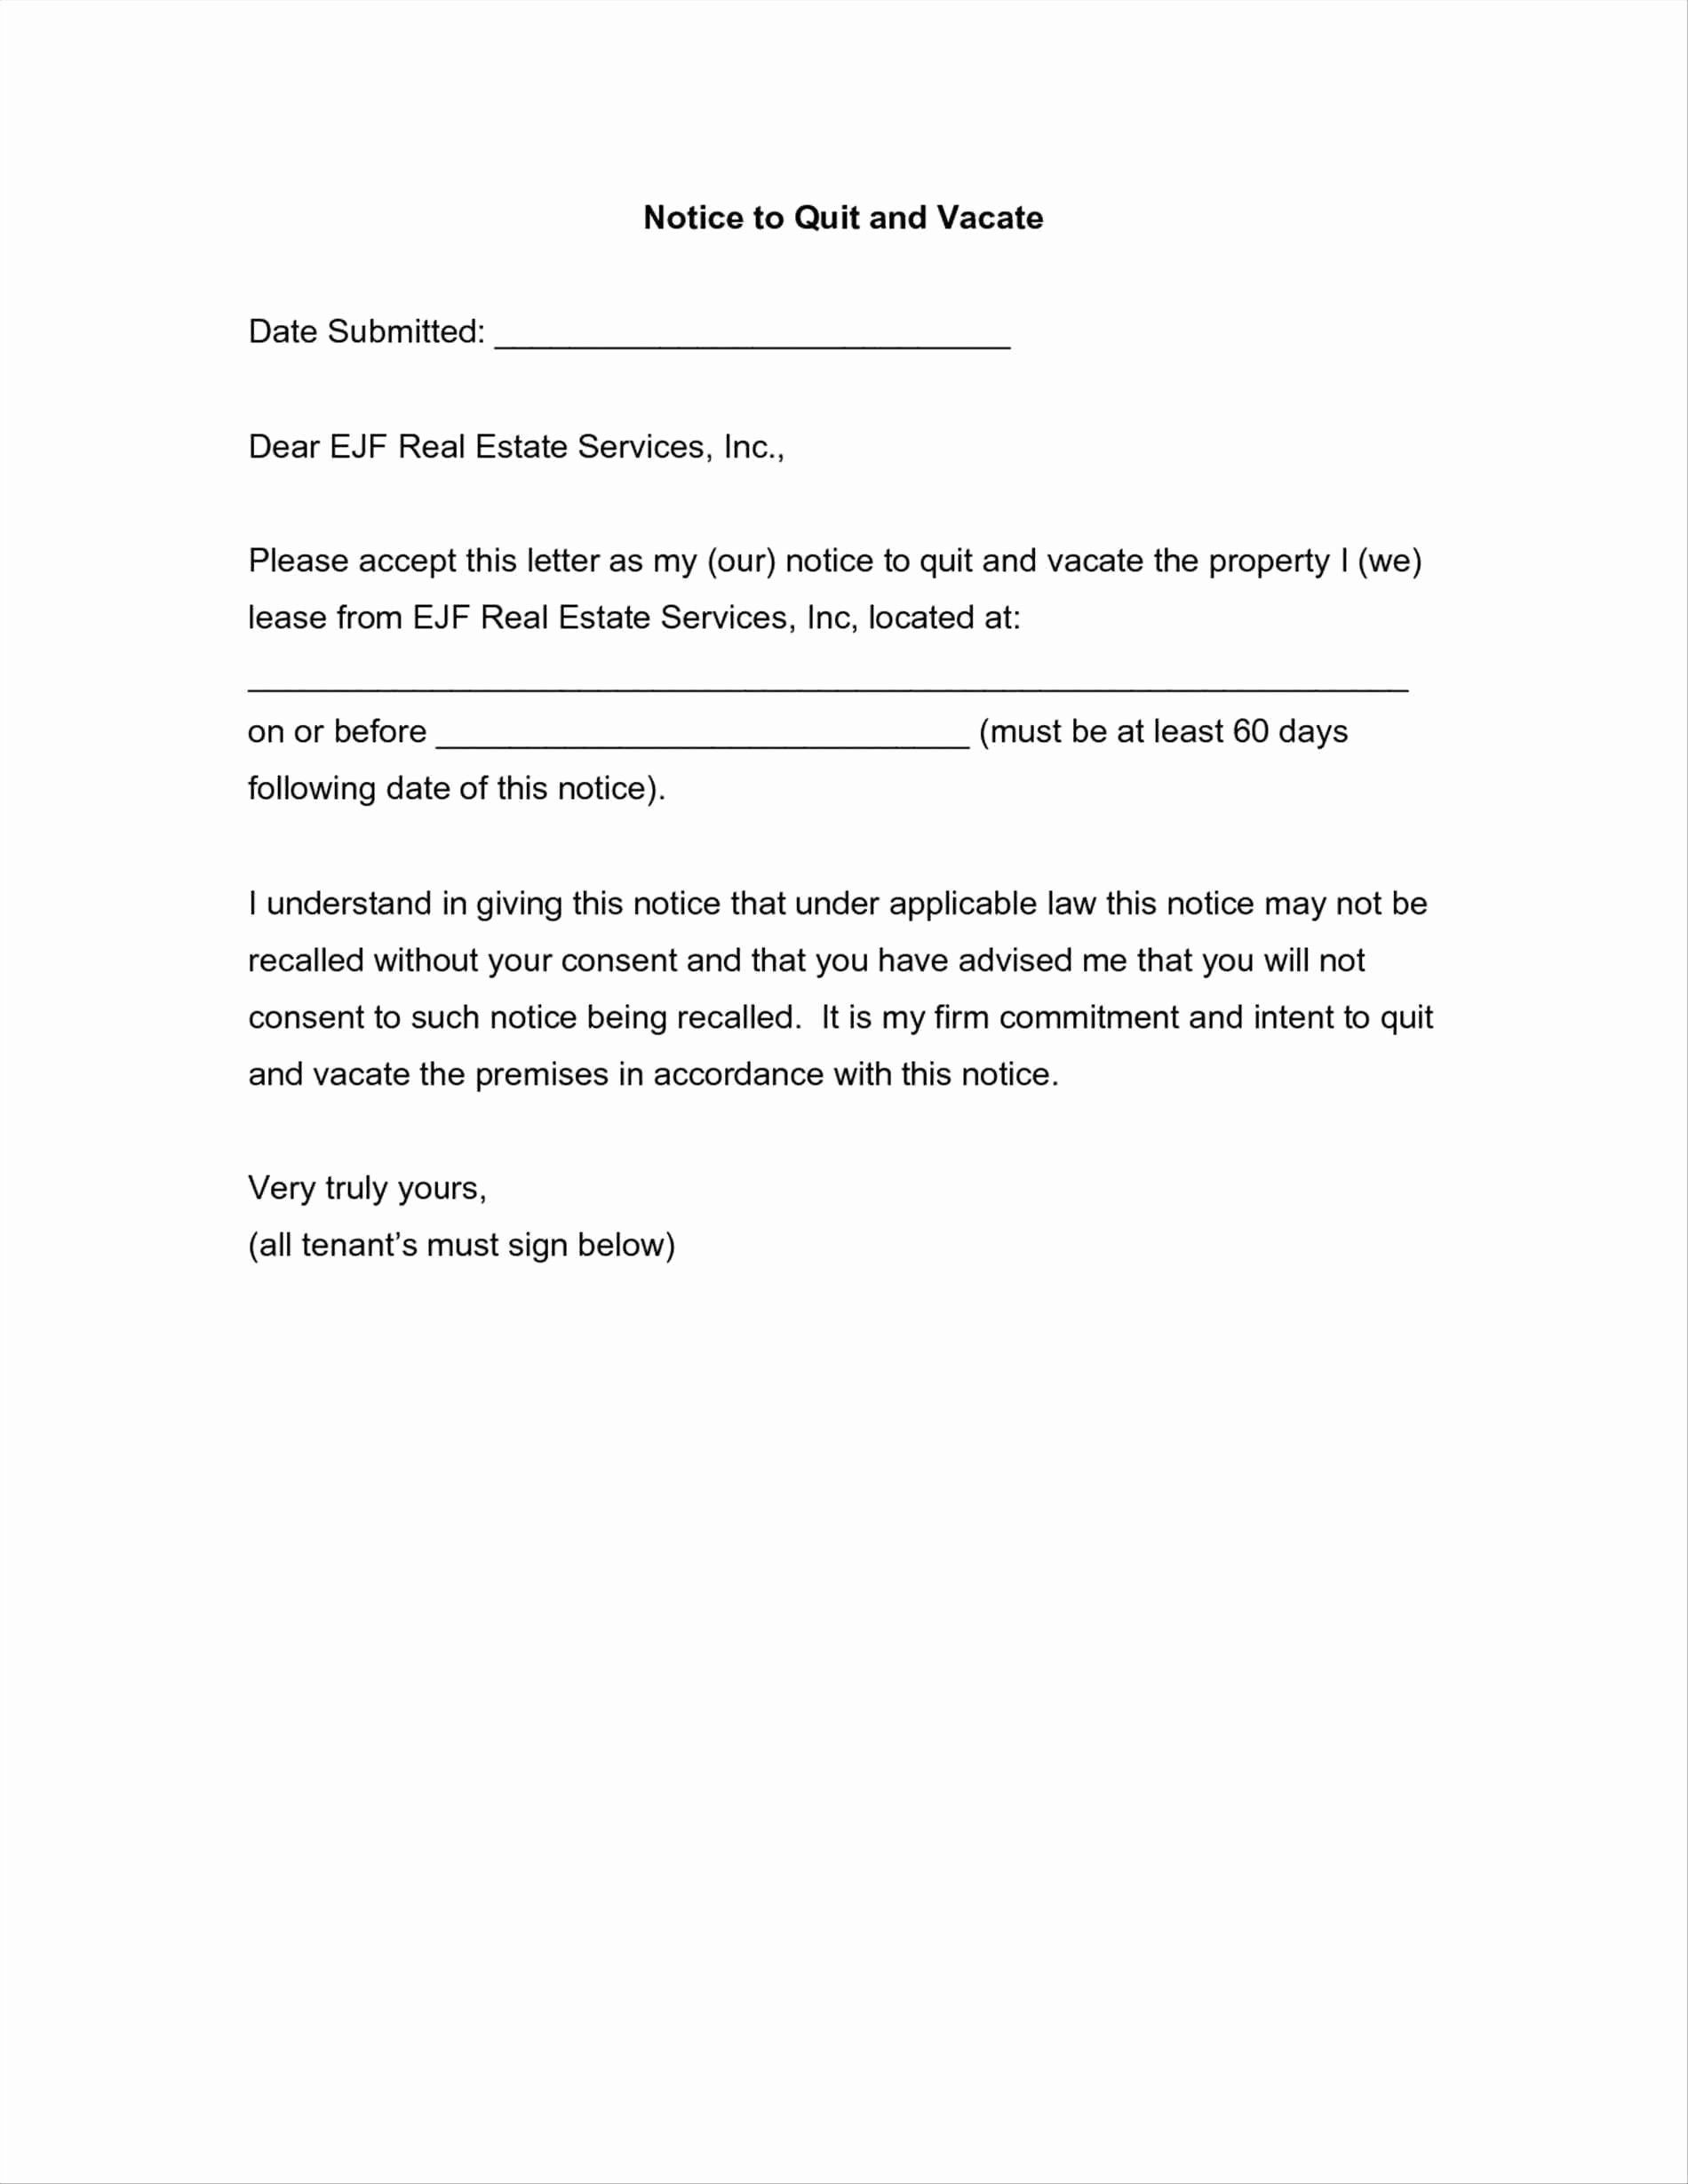 Written Notice To Vacate Templates Elegant Notice To Vacate Apartment Letter Template Samples Letter Templates Lettering Receipt Template